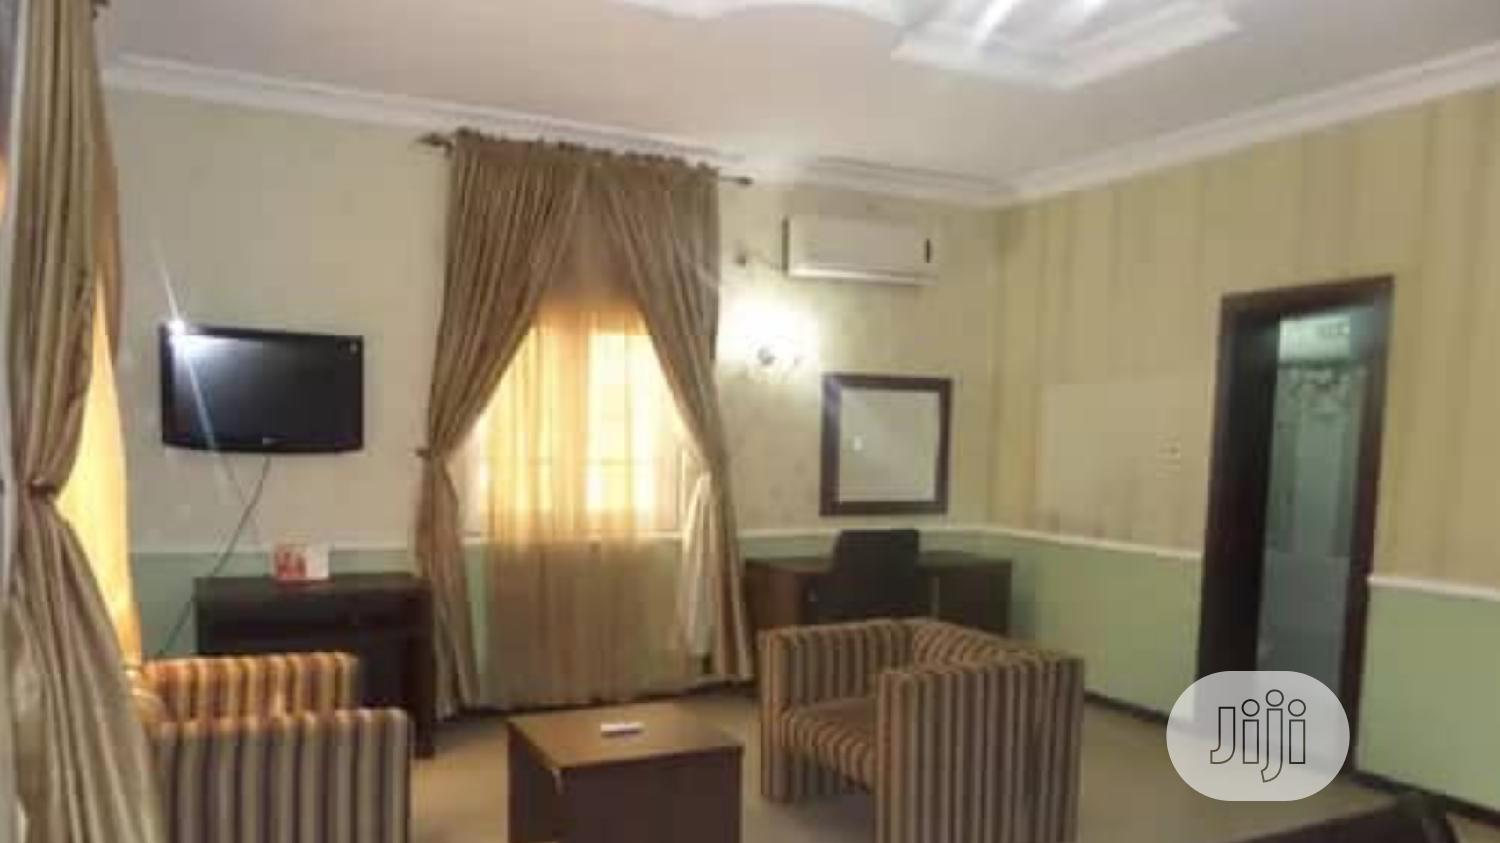 20 Rooms Hotel With Conference Hall At Gwarinpa Abuja   Commercial Property For Sale for sale in Gwarinpa, Abuja (FCT) State, Nigeria